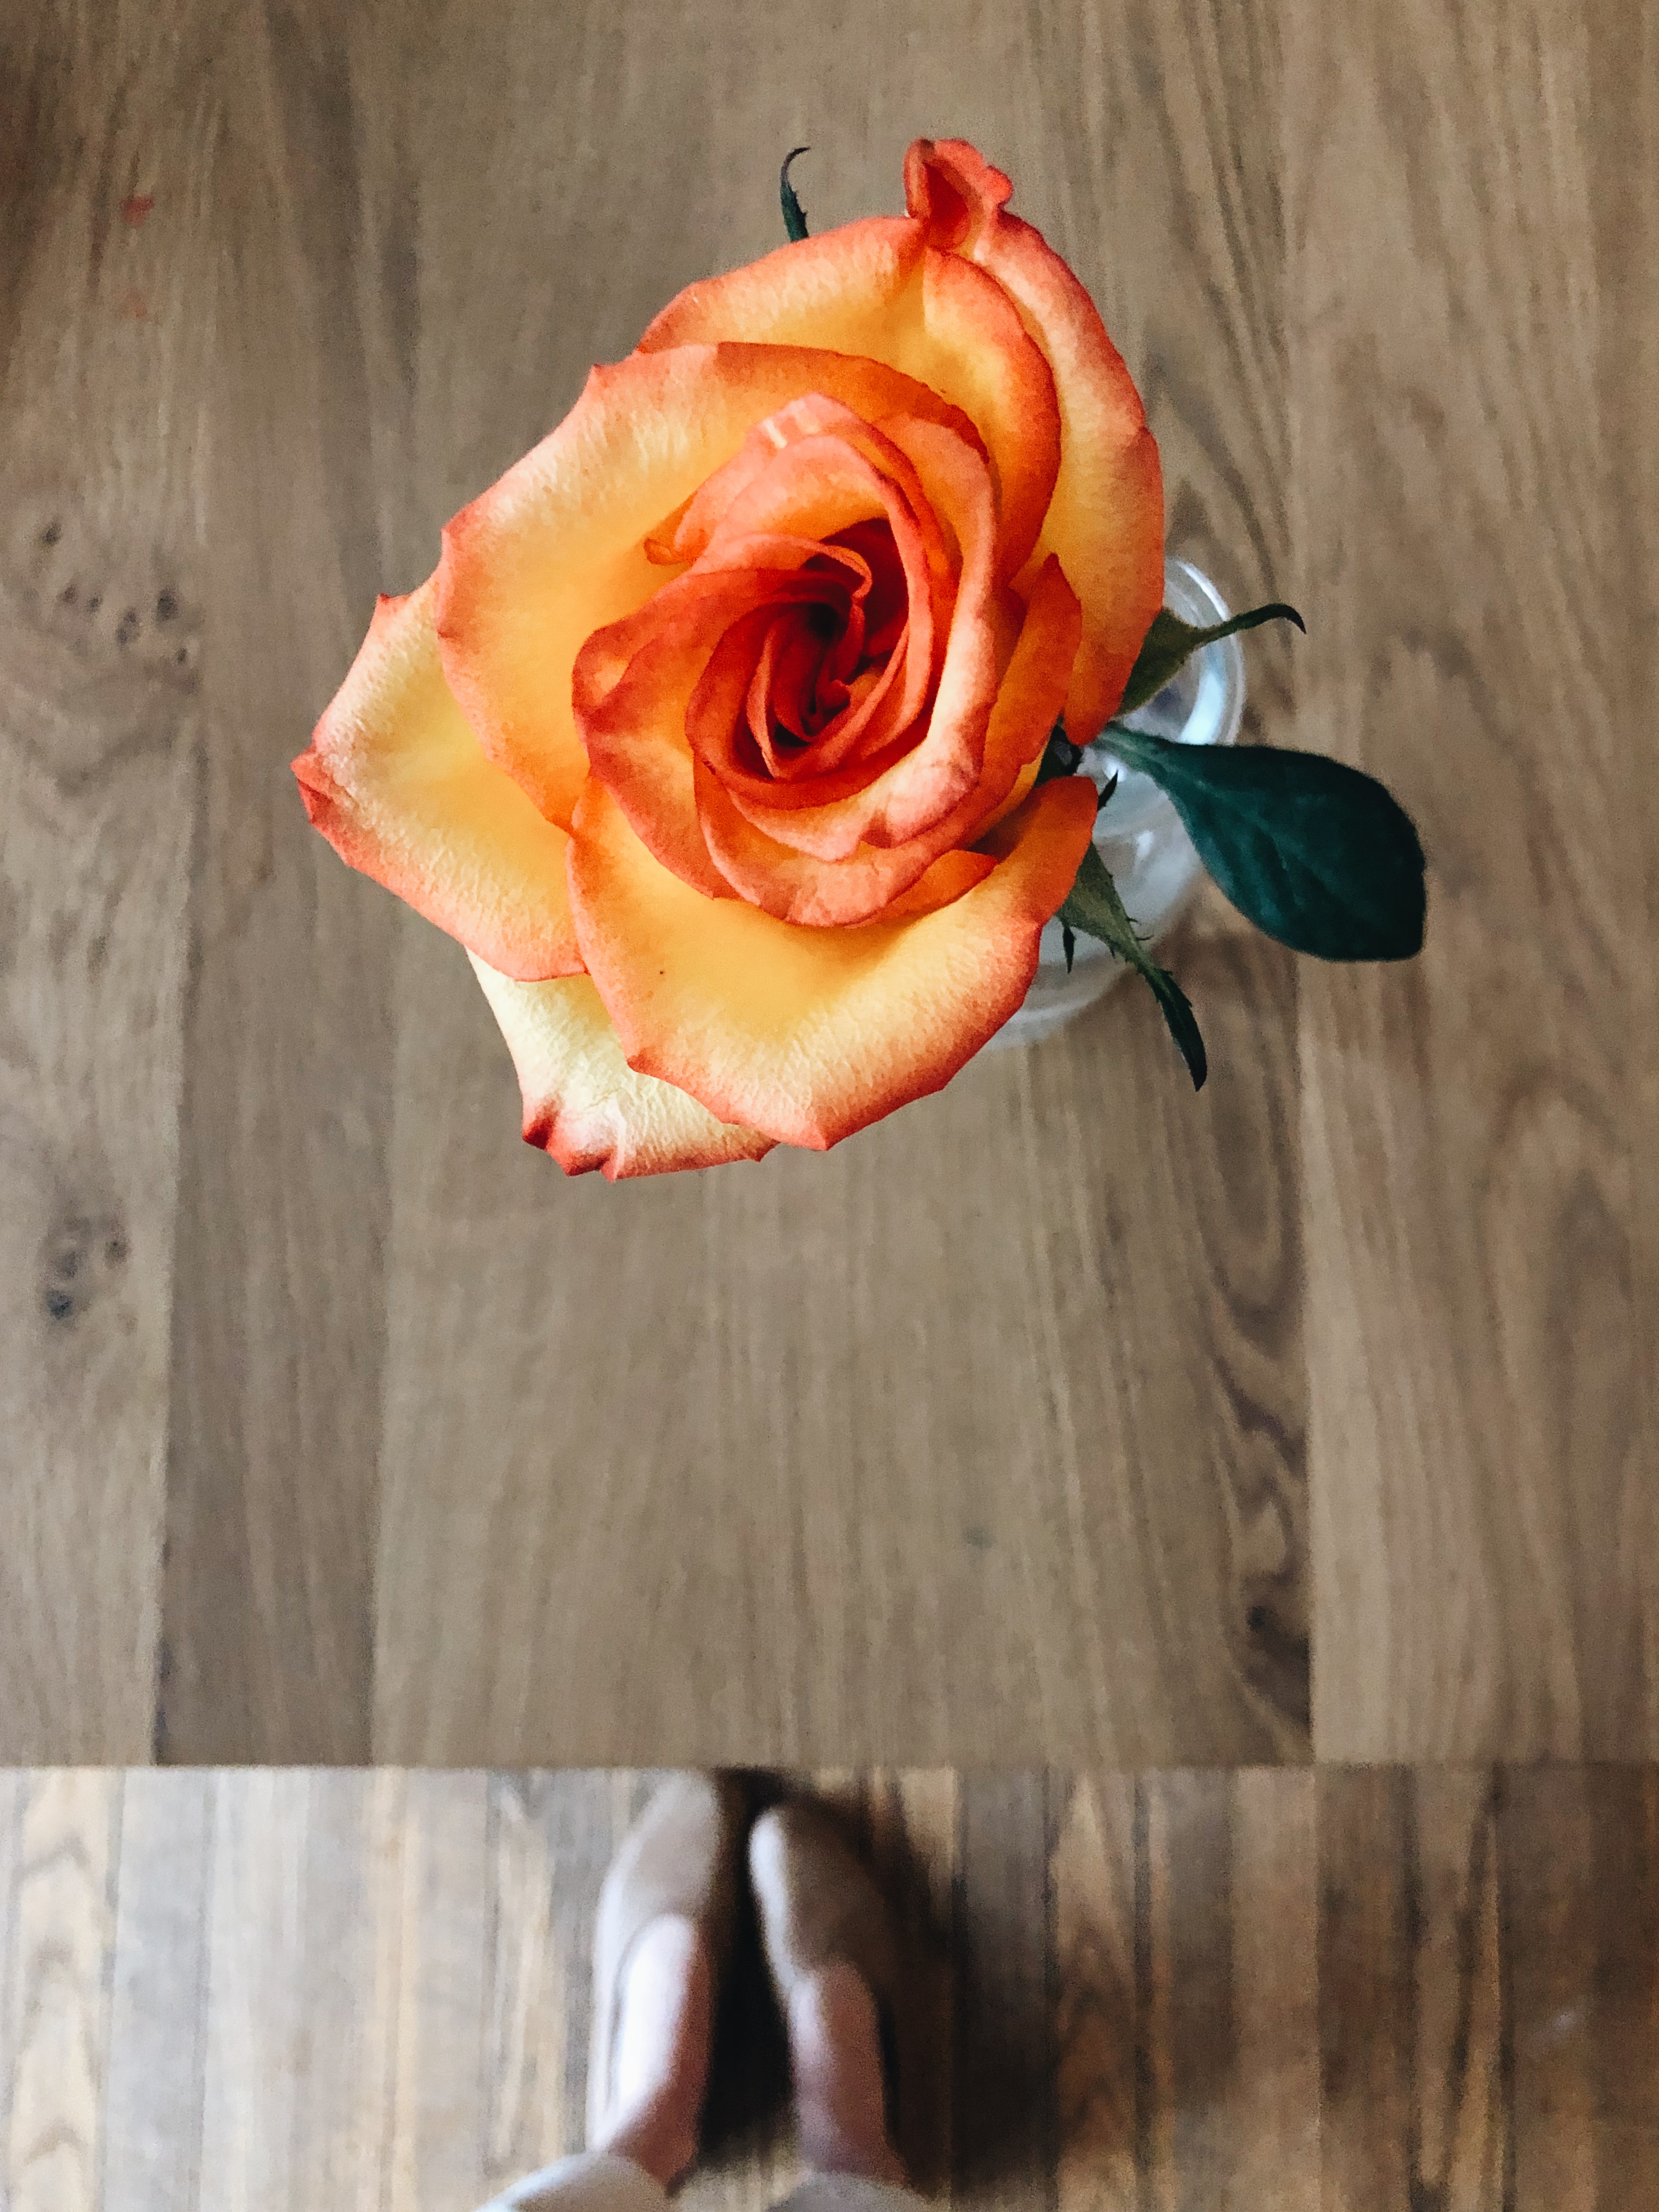 rose and feet